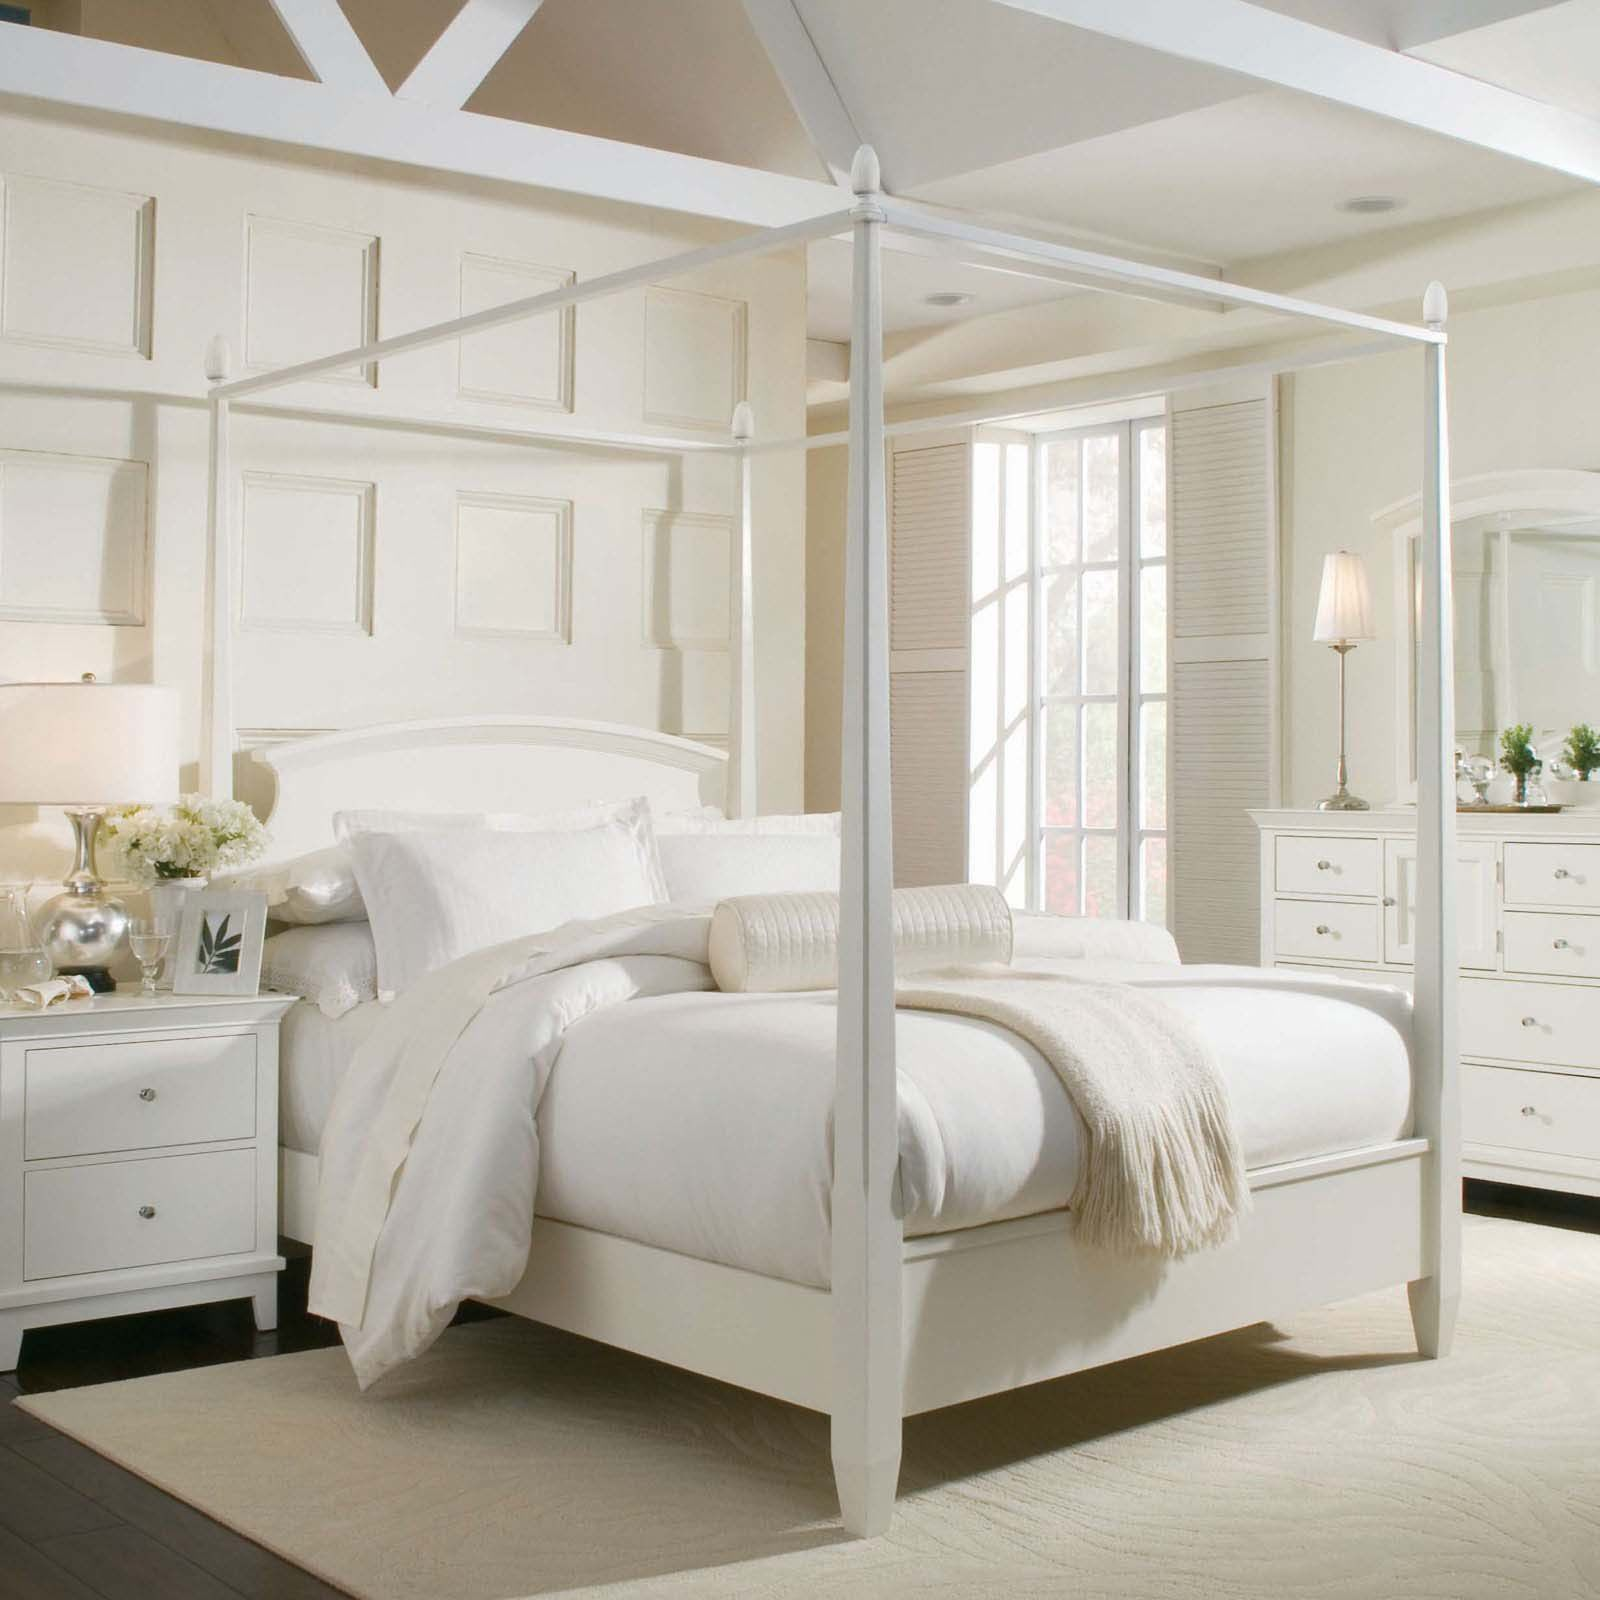 Canopy beds For the Modern Bedroom Freshome 241 40 Stunning Bedrooms ...